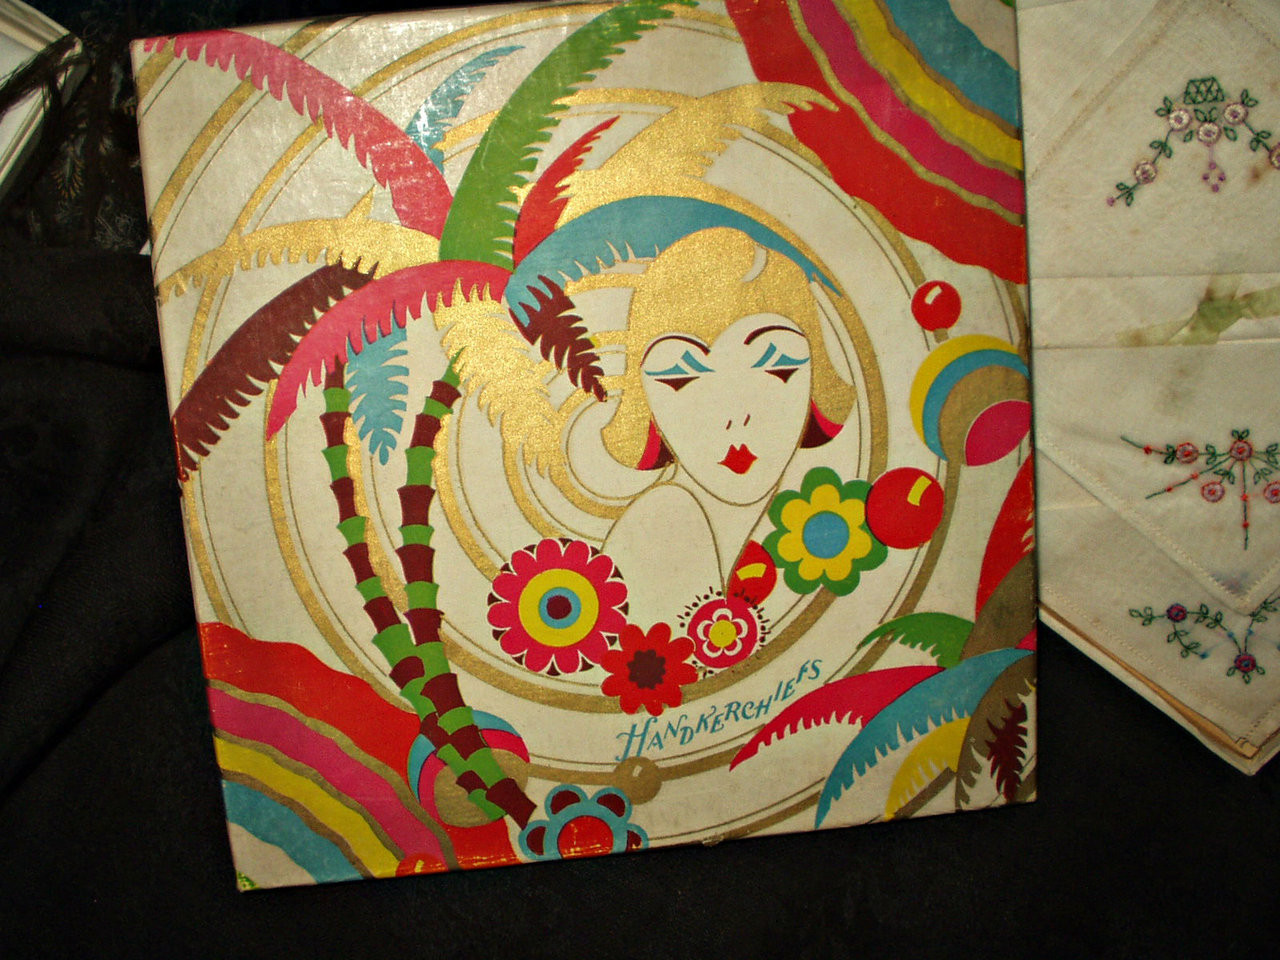 Graphic 1920s Art Deco Tropical Influence Gift Box 6 Handkerchiefs